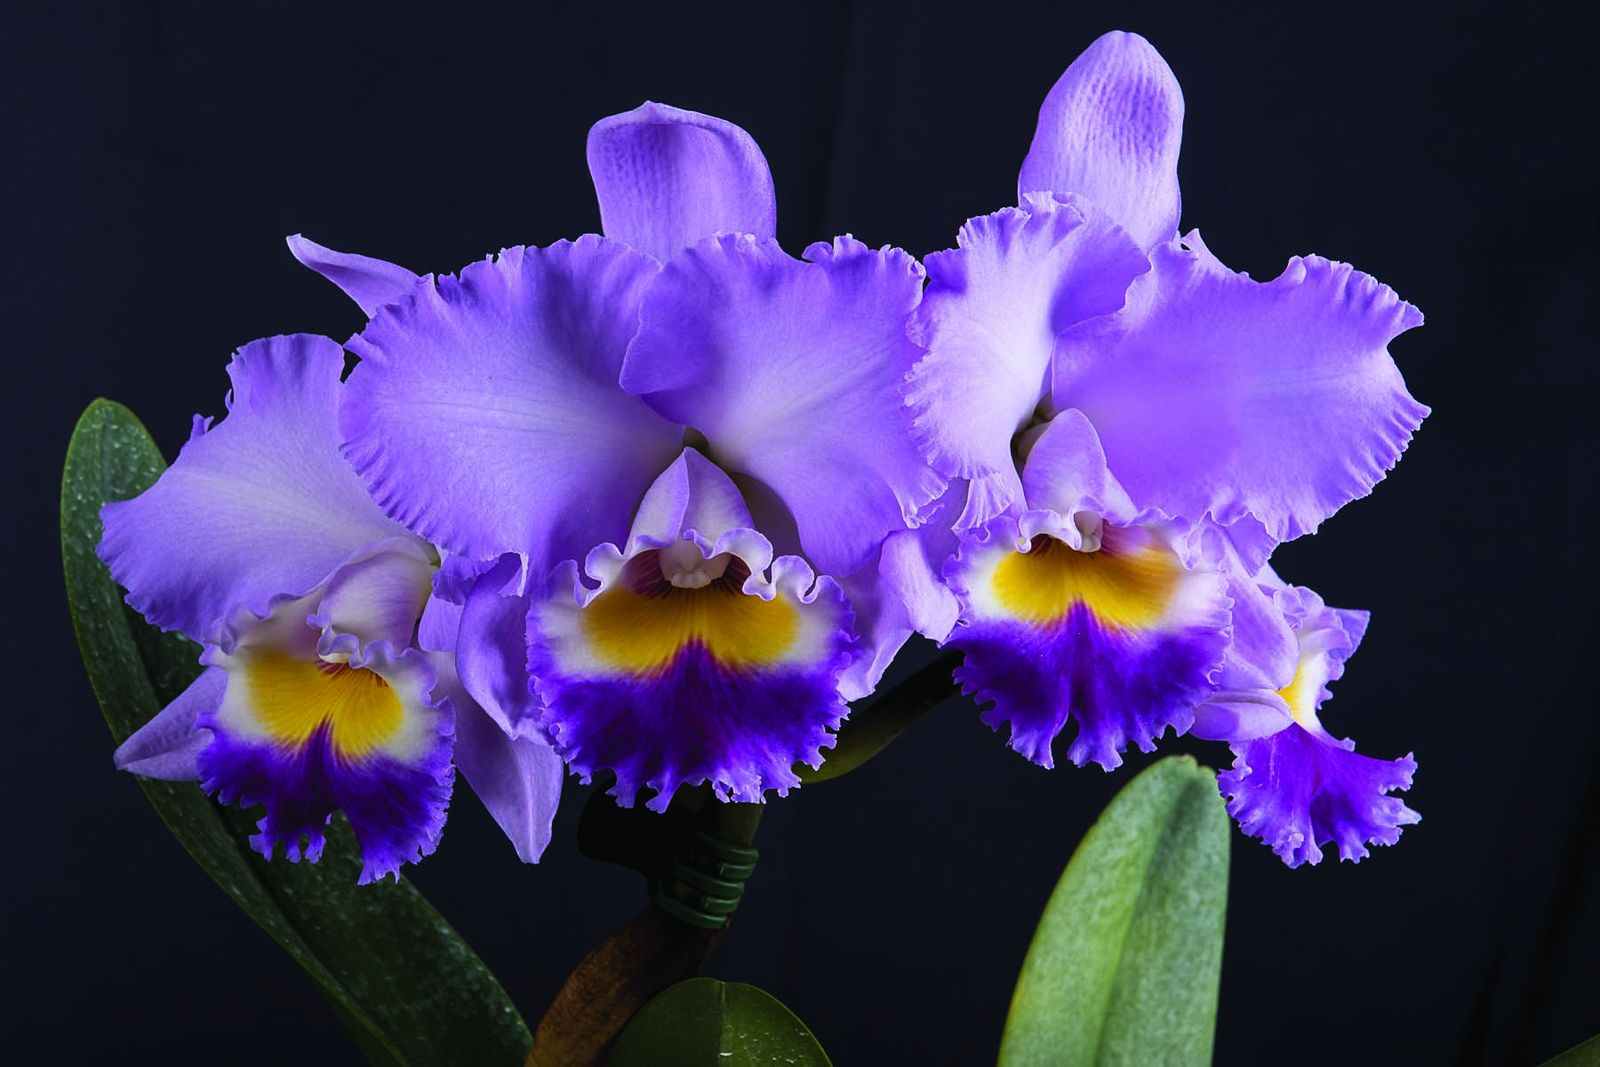 Blc Annie Bella X Clc Mary Alix Beautiful Orchids Orchid Flower Cattleya Orchid